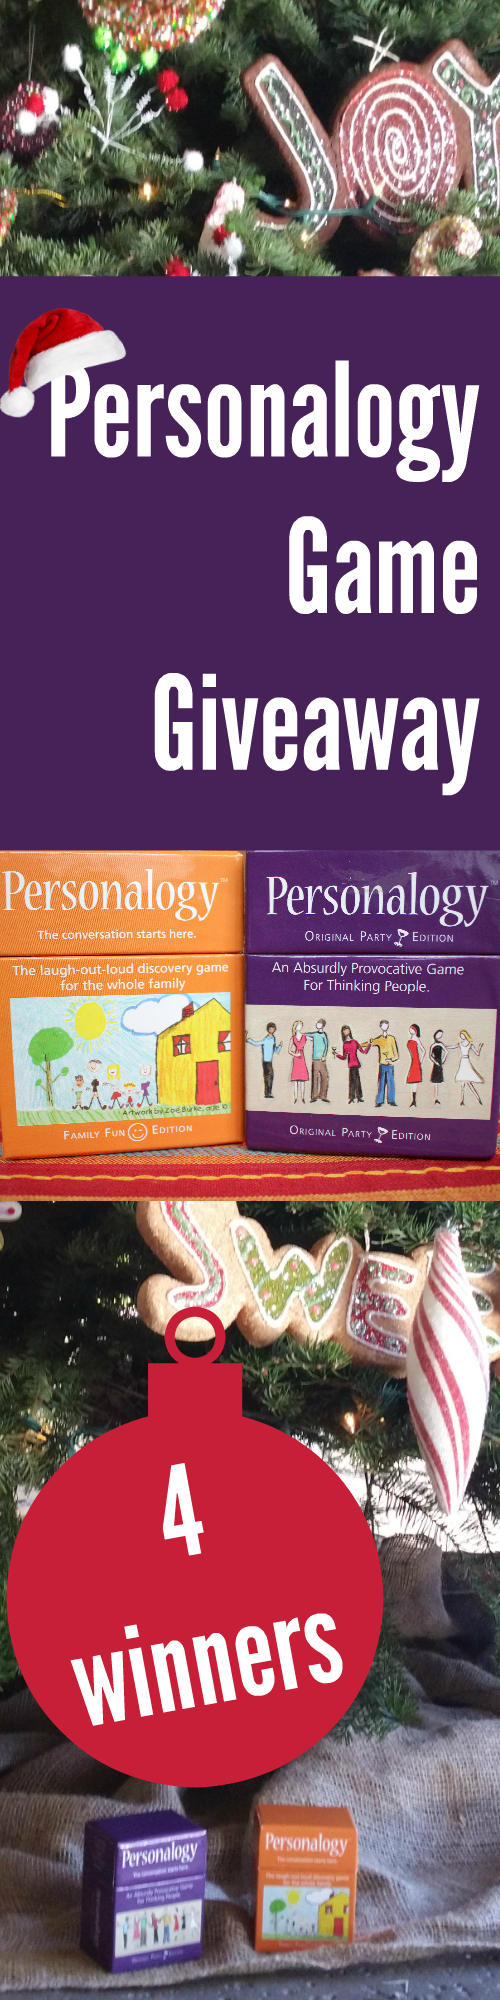 Personalogy Game Giveaway (4 winners)